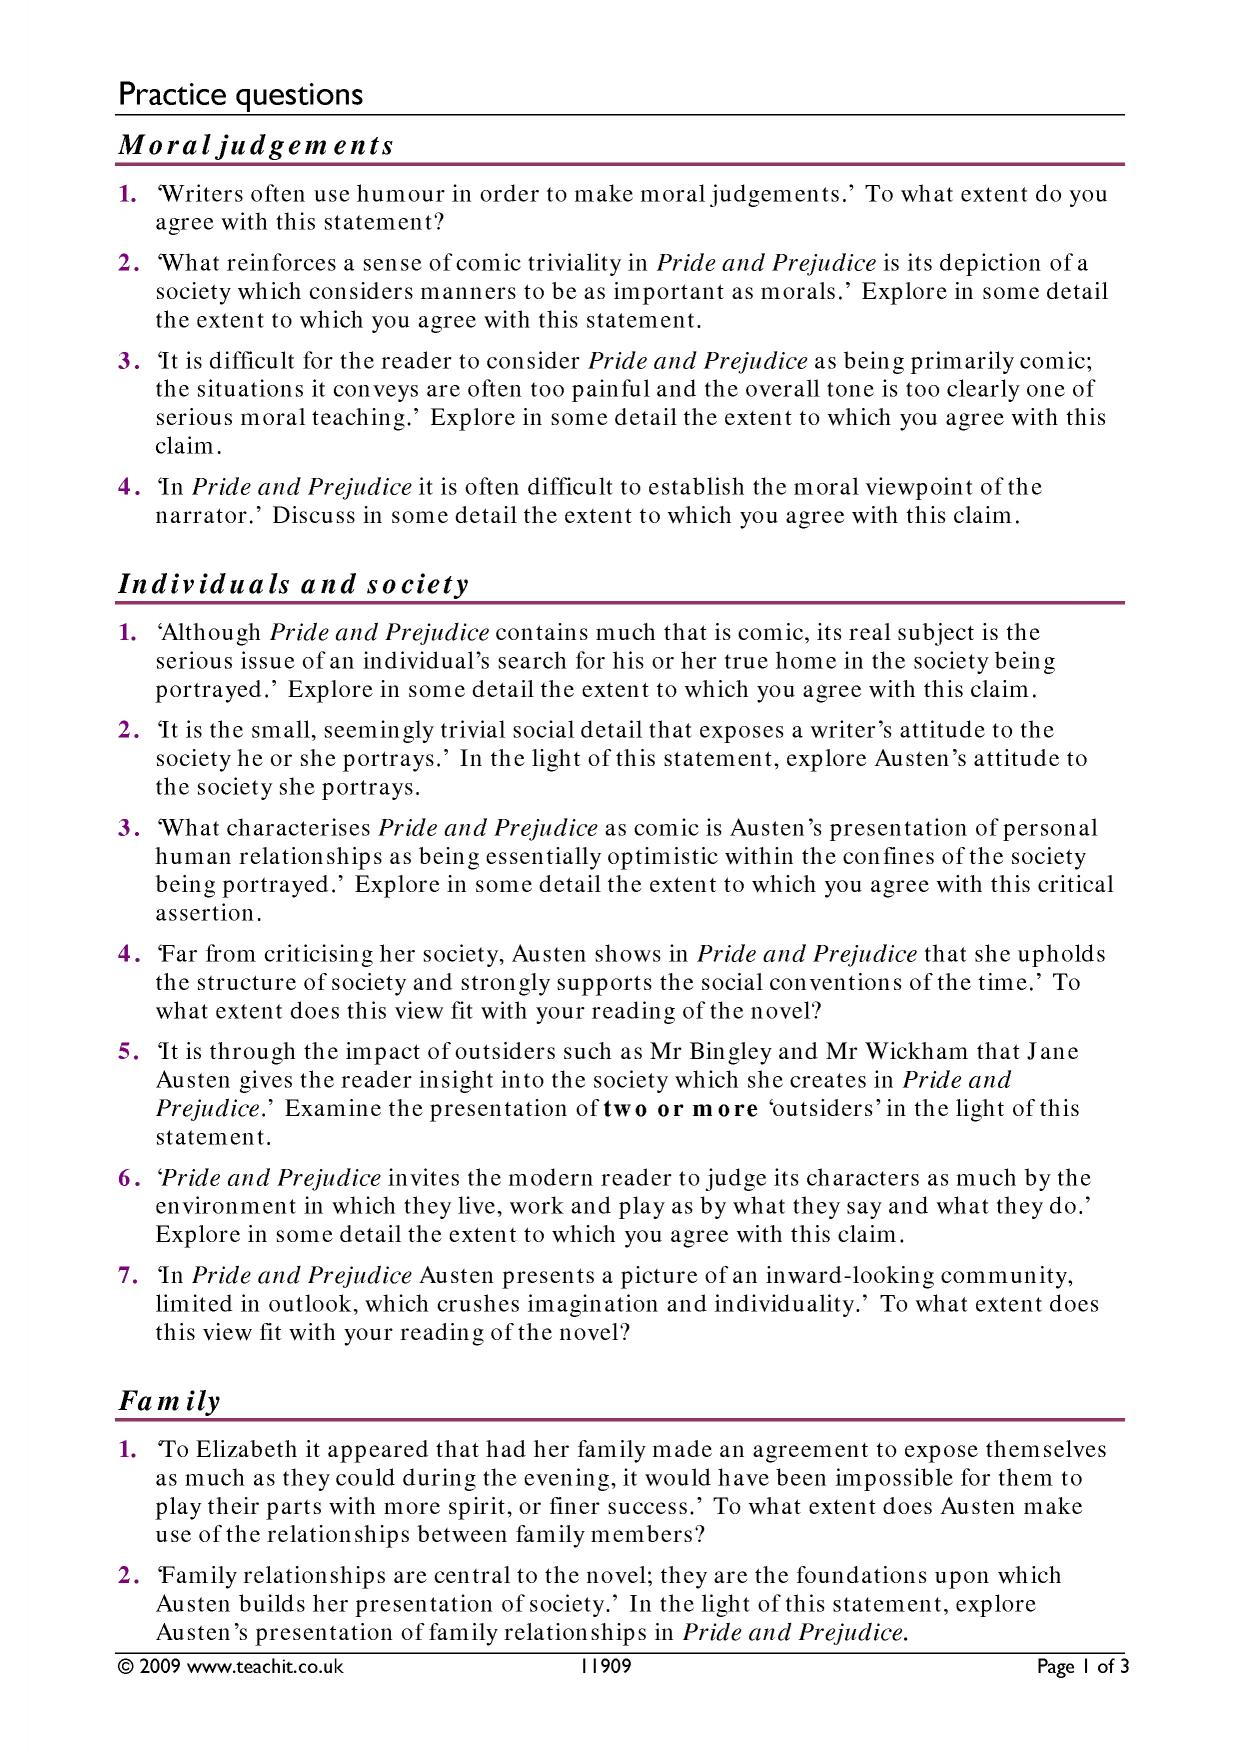 006 Essay Pride And Prejudice By Jane Austen Ks3 Write An On Goes Before Fall X My Nepal Country How To Outstanding Questions Answers Aqa Good For Full